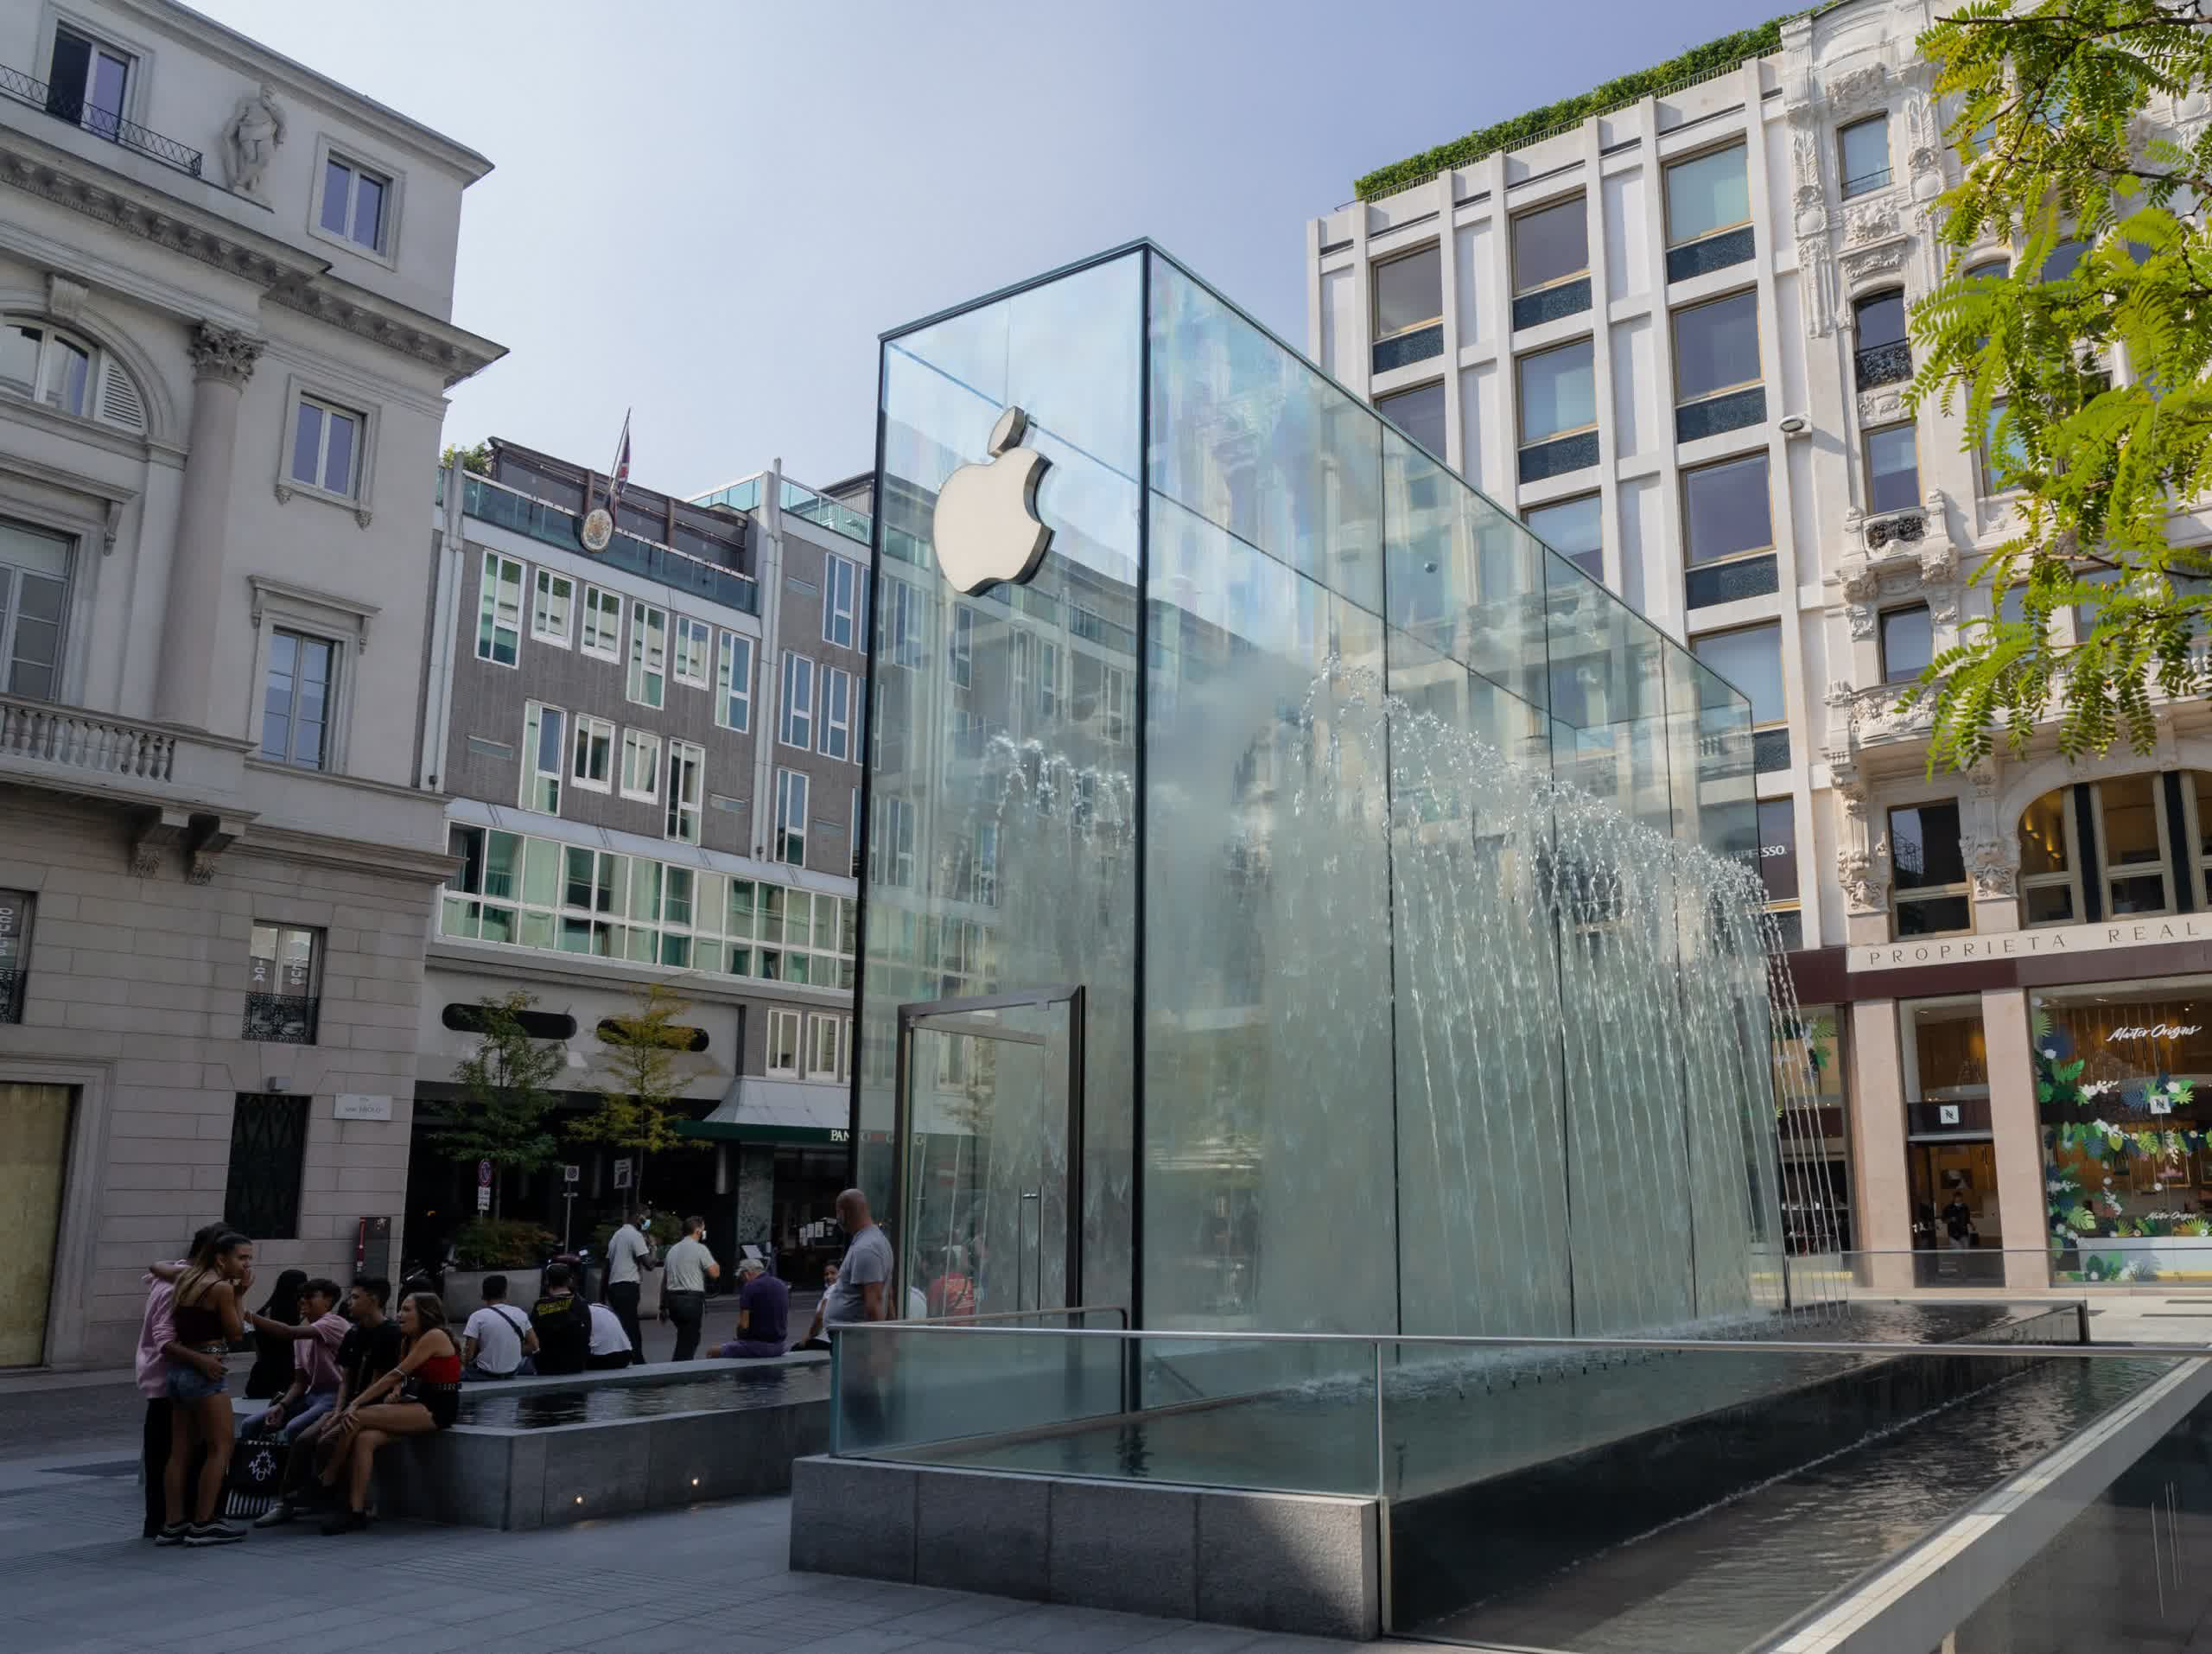 Apple asks court to stay ruling demanding it allow links to external payment systems by December